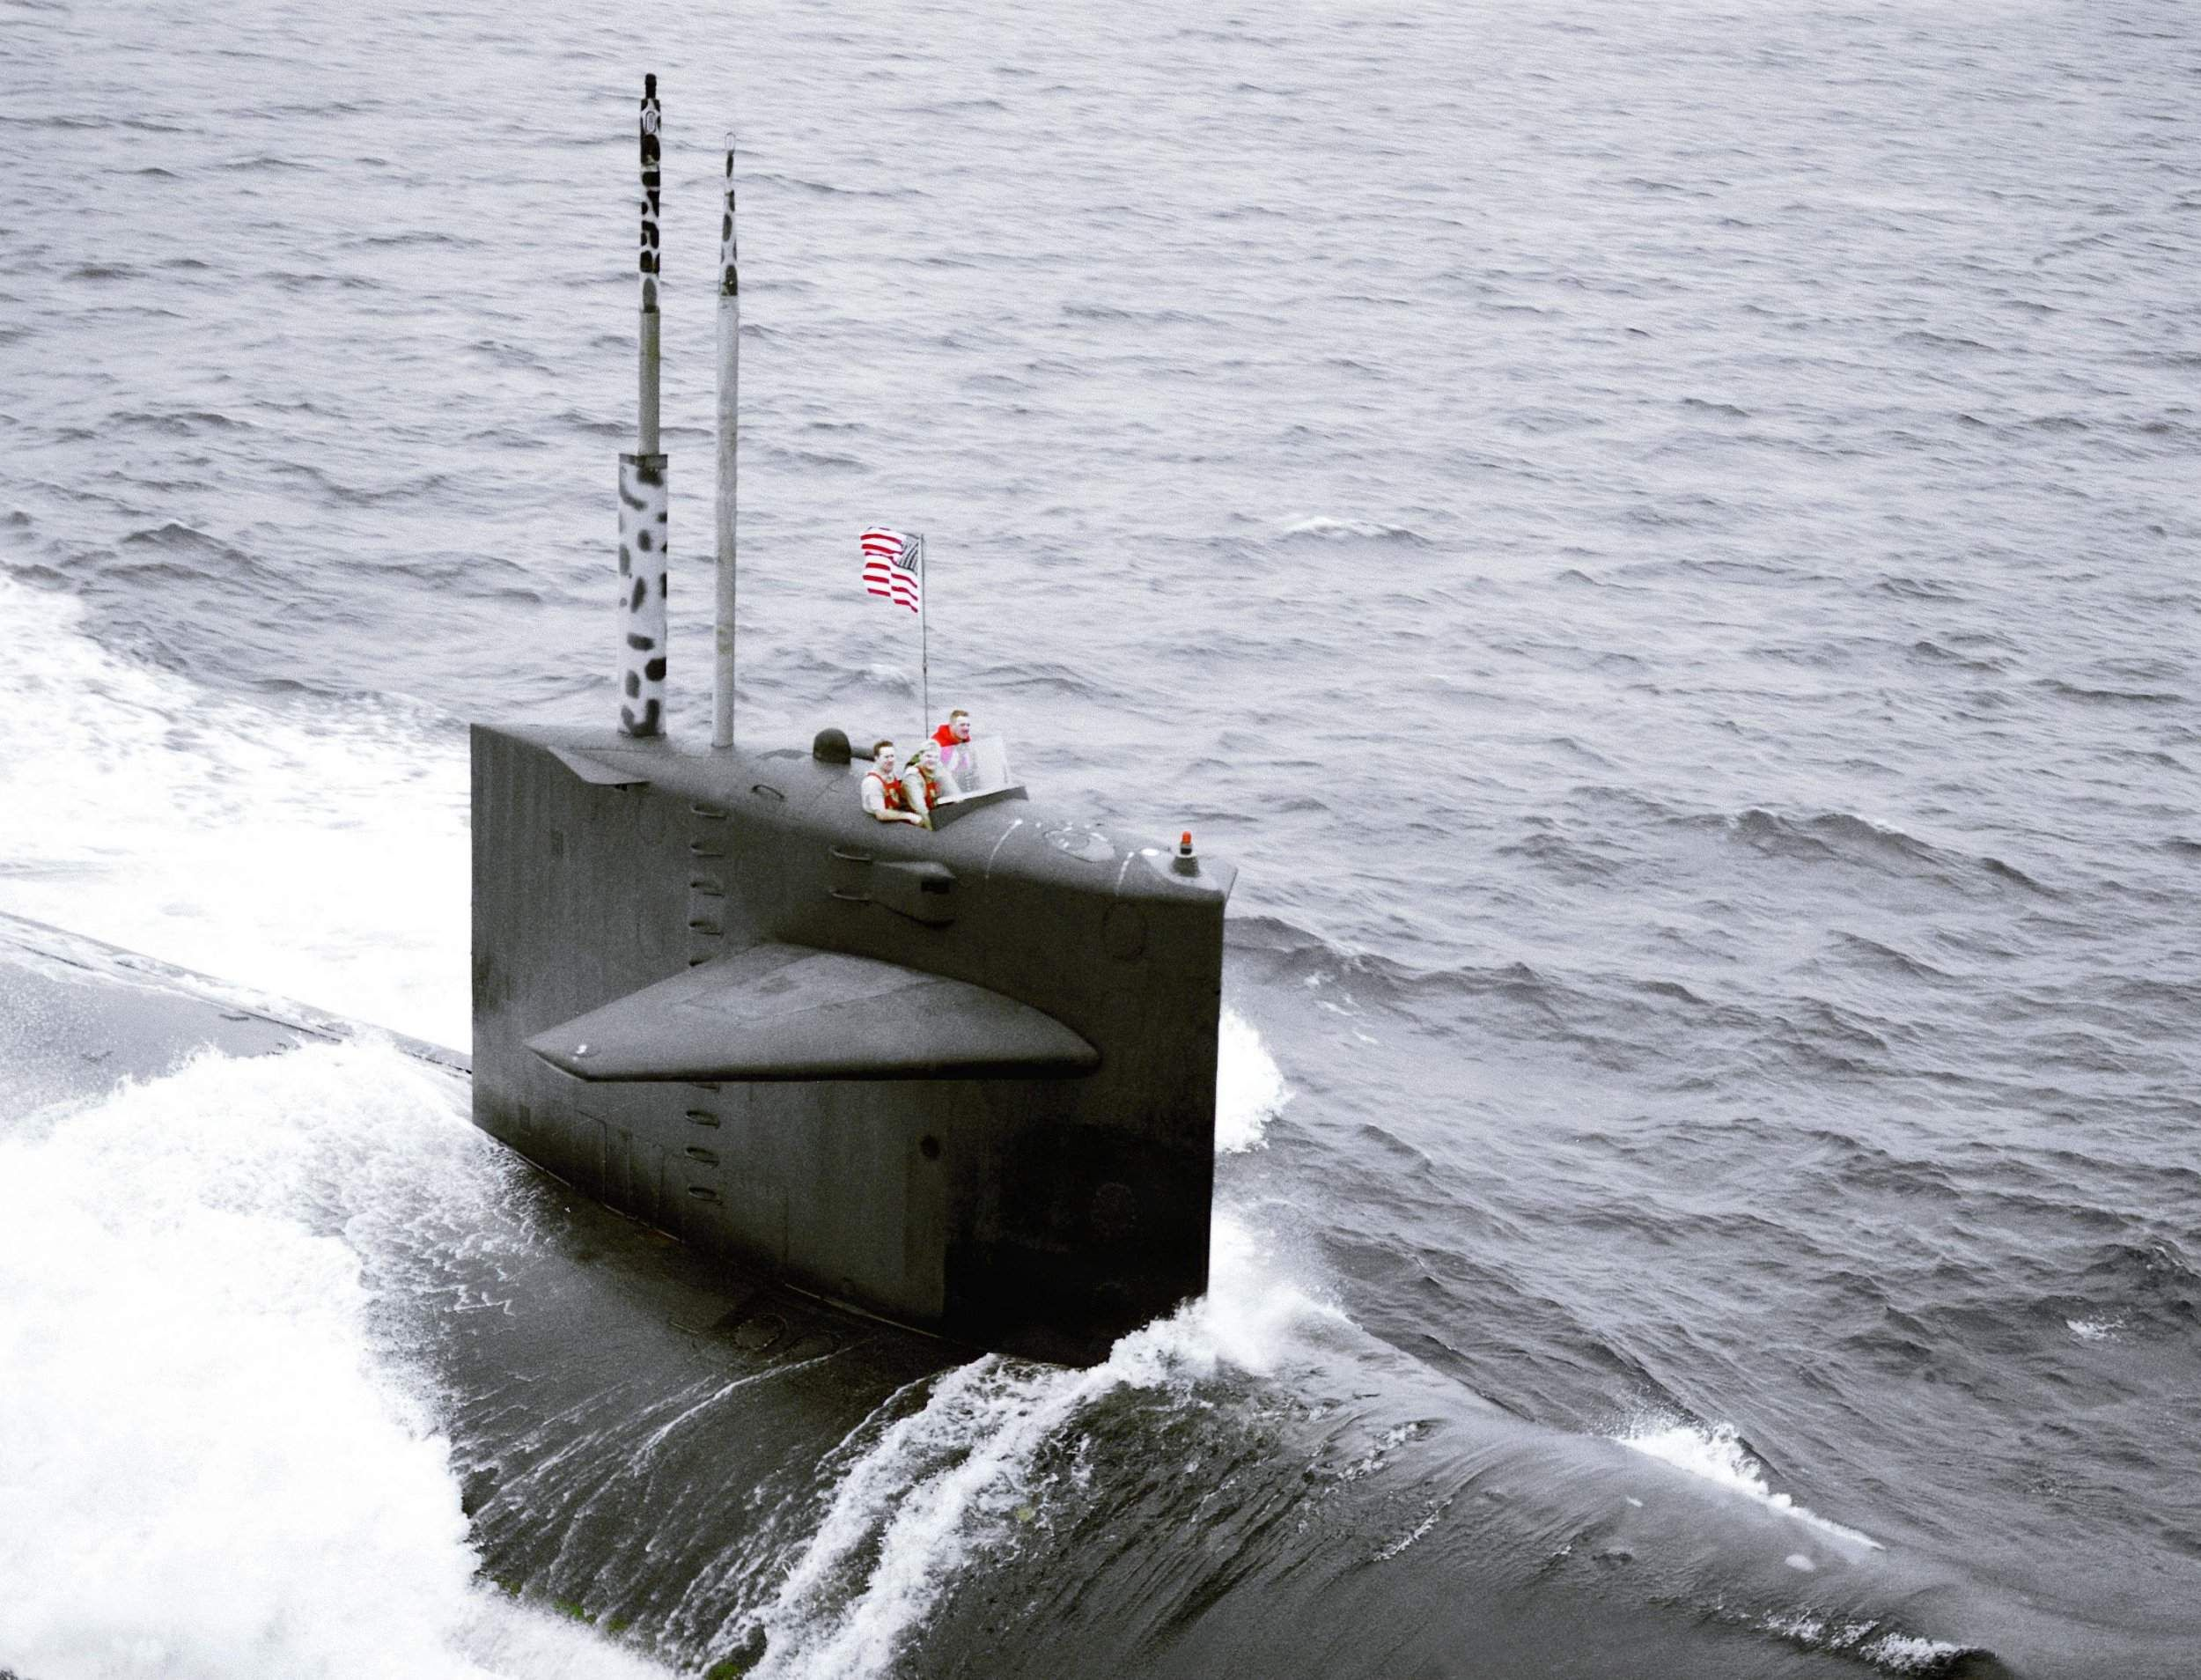 USS Haddock (SSN-621) underway on 6 June 1989.